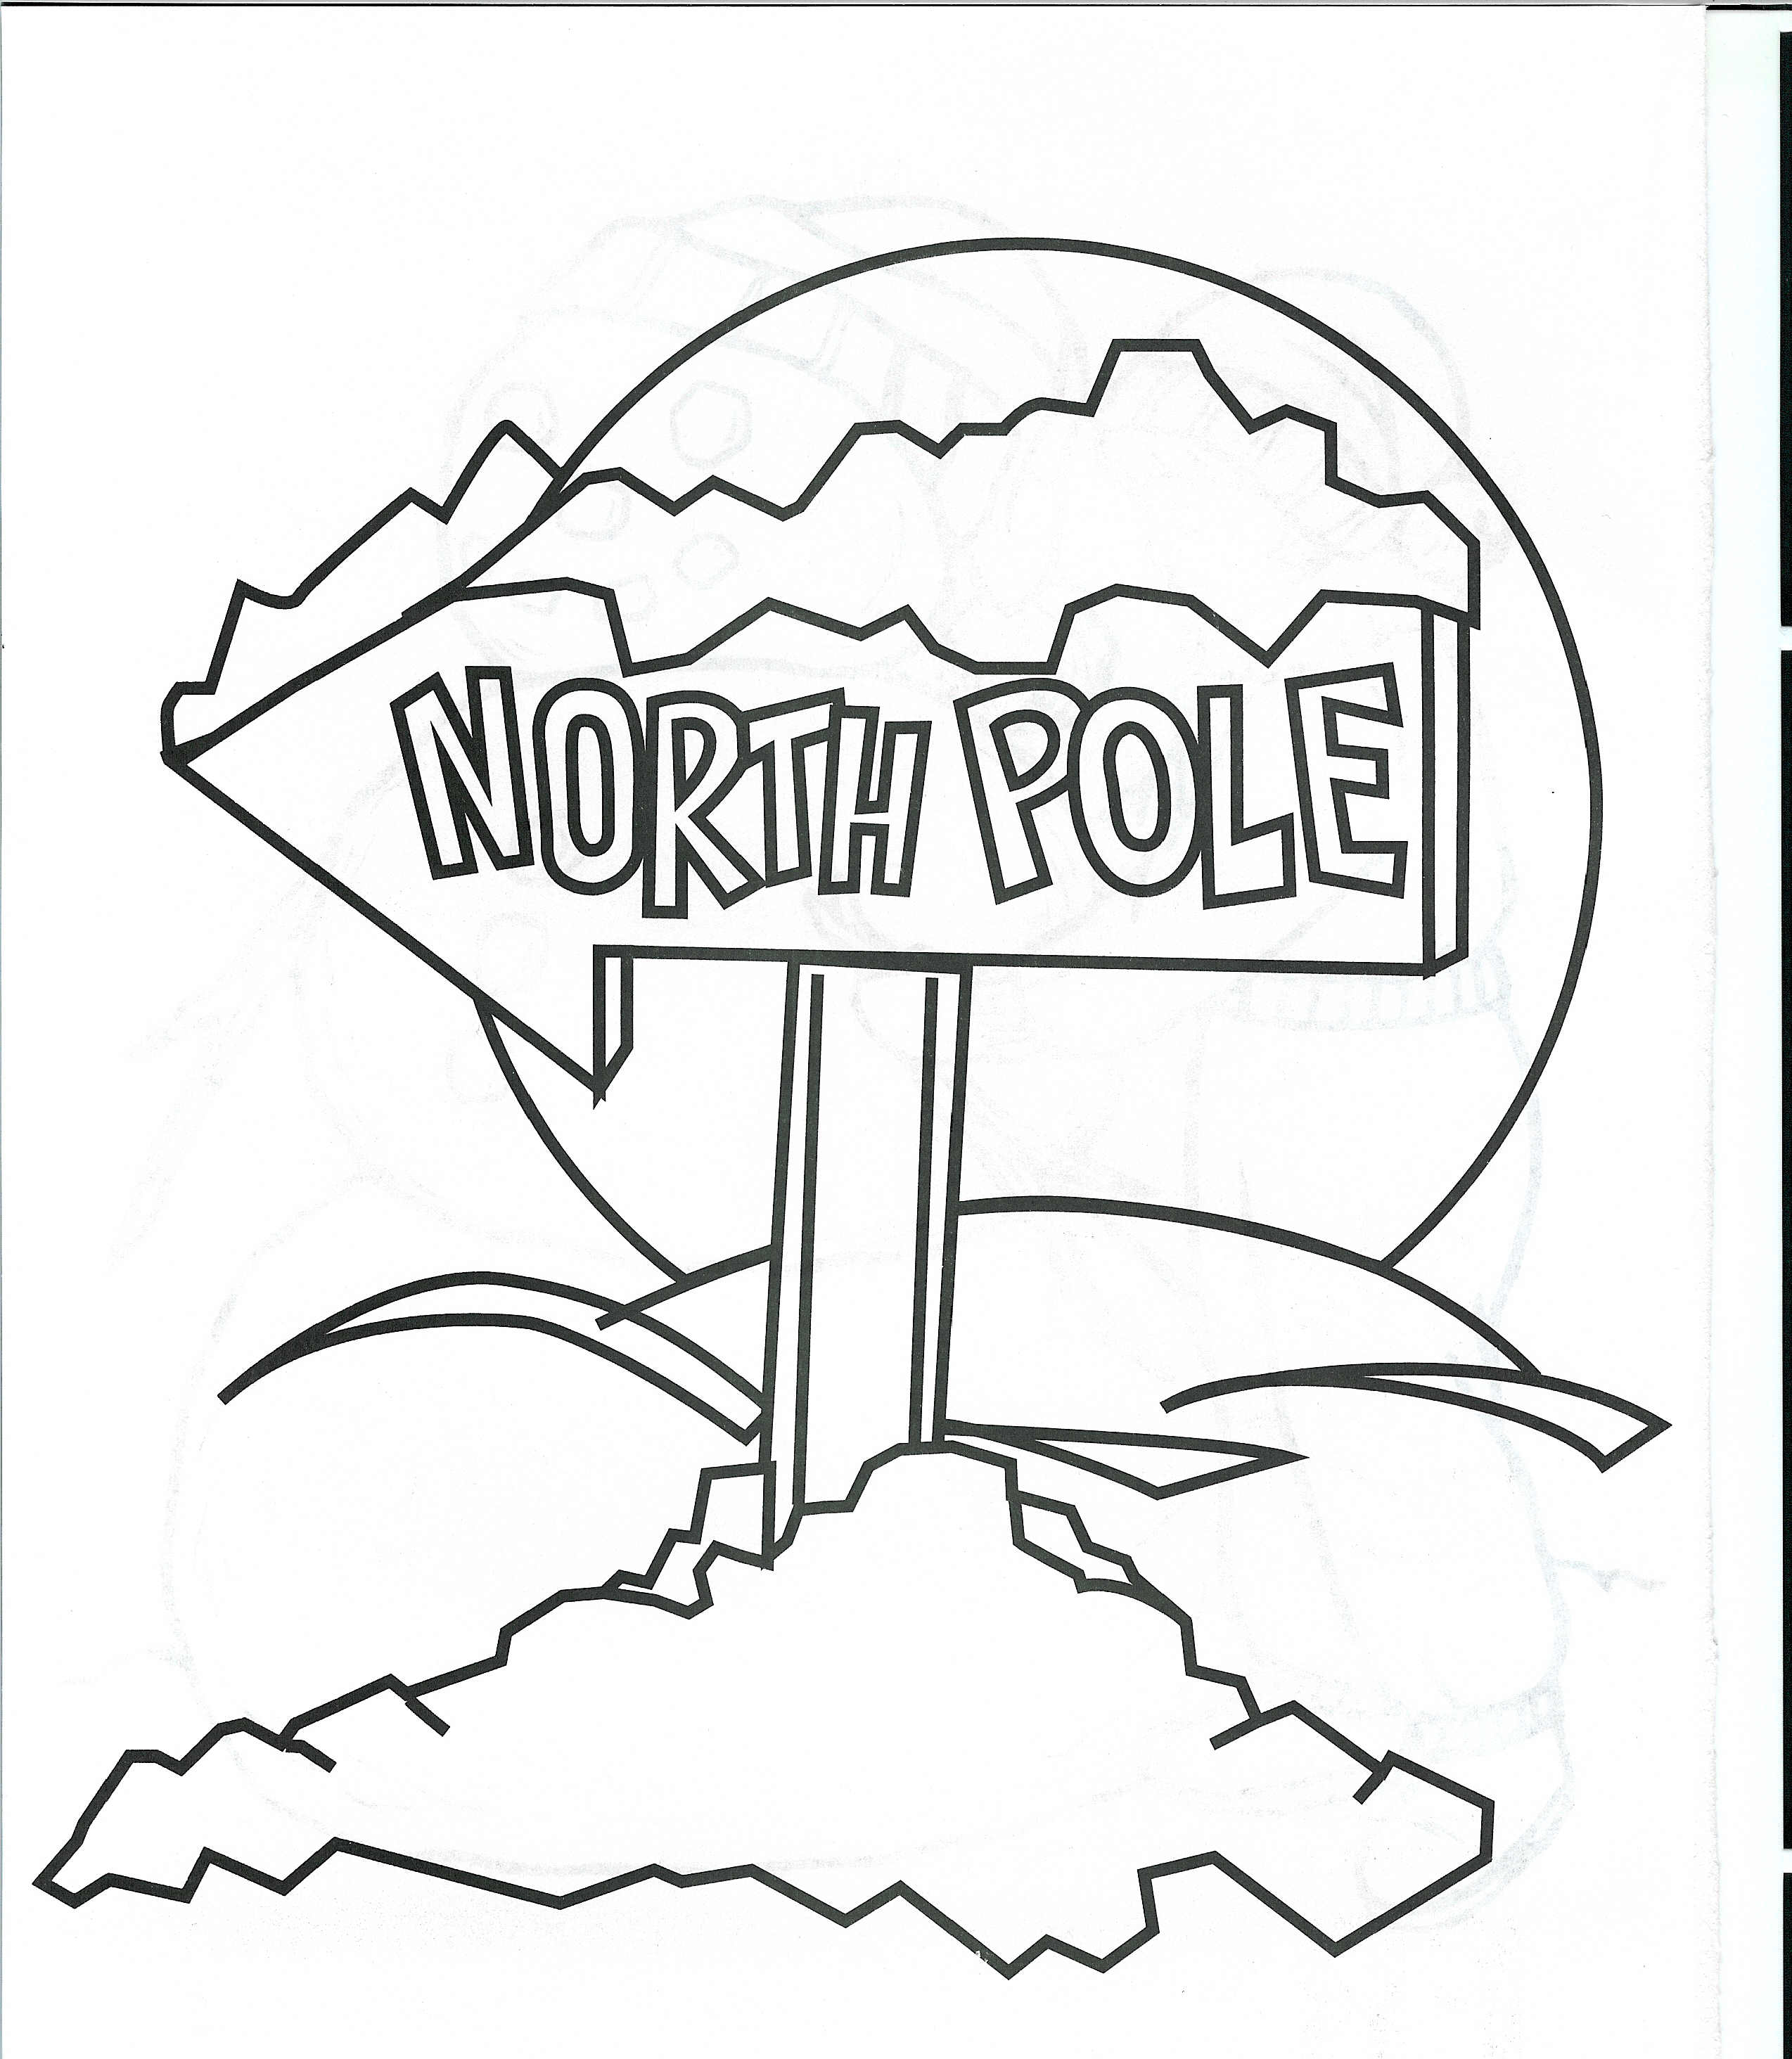 Coloring Pages North Pole Coloring Page north pole coloring page eassume com bear from totem templates coloring